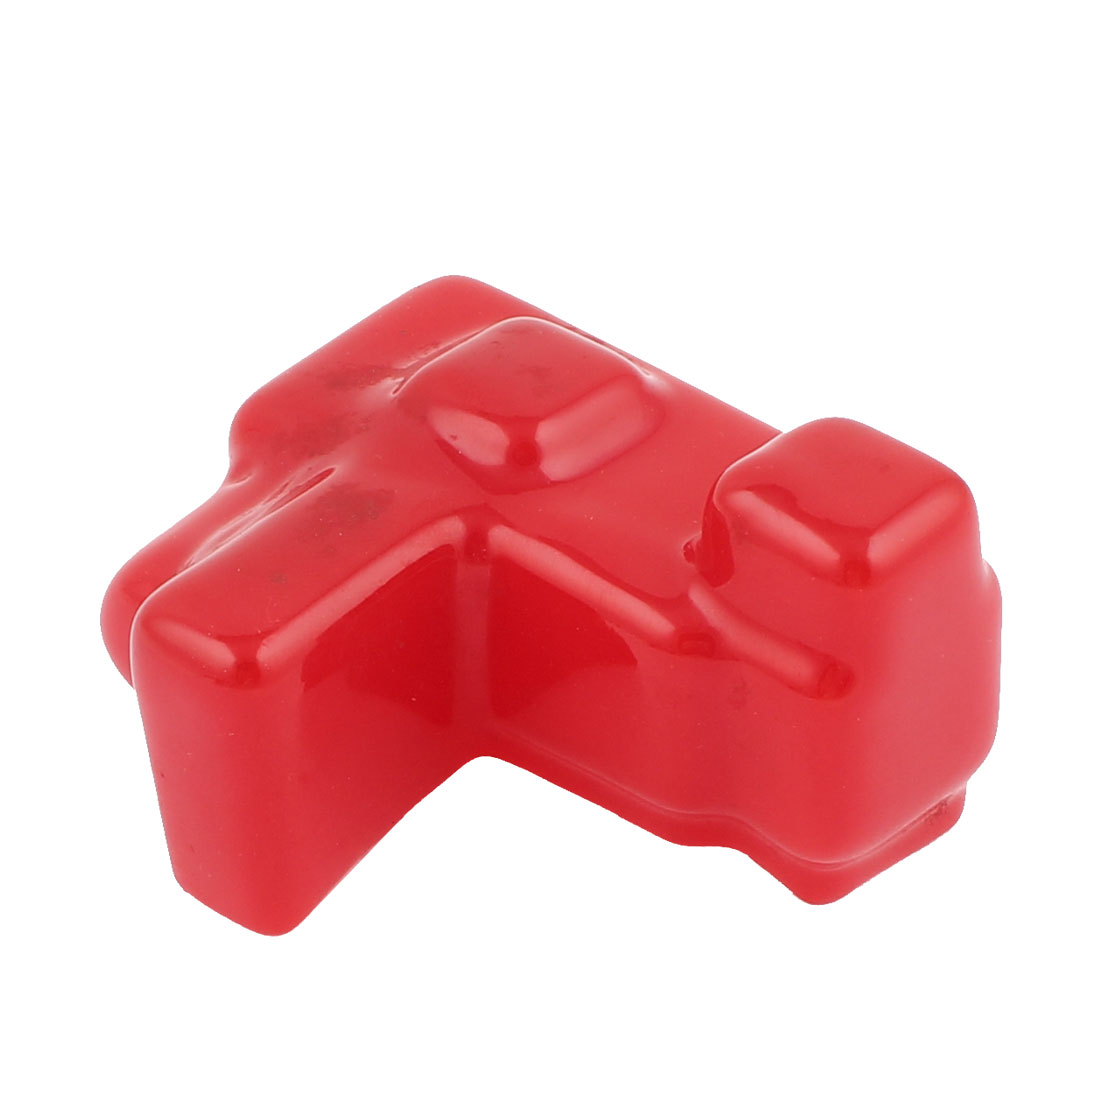 Car WiringTerminal Covers Protectors Red Hot Rod Boat Boots Cap